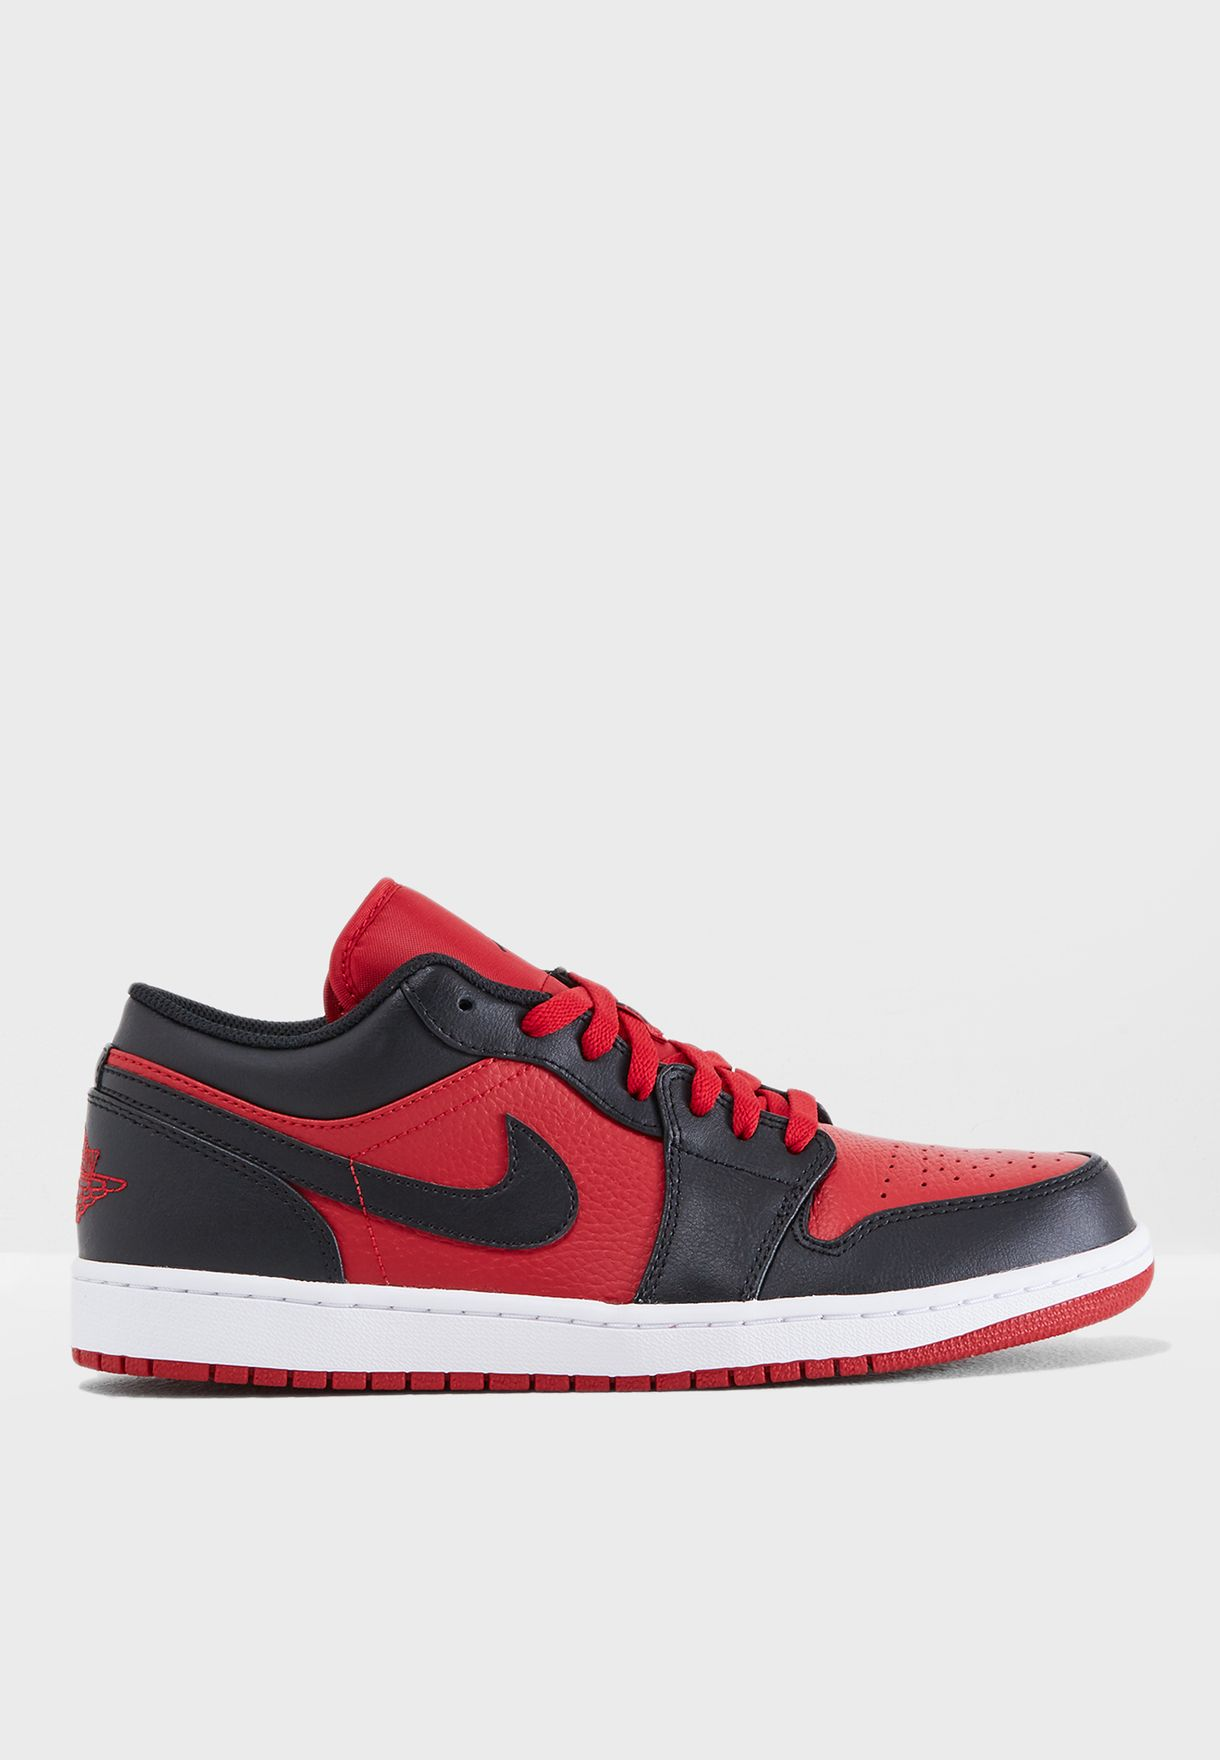 589d337679ad80 Shop Nike red Air Jordan 1 Low 553558-610 for Men in Kuwait ...